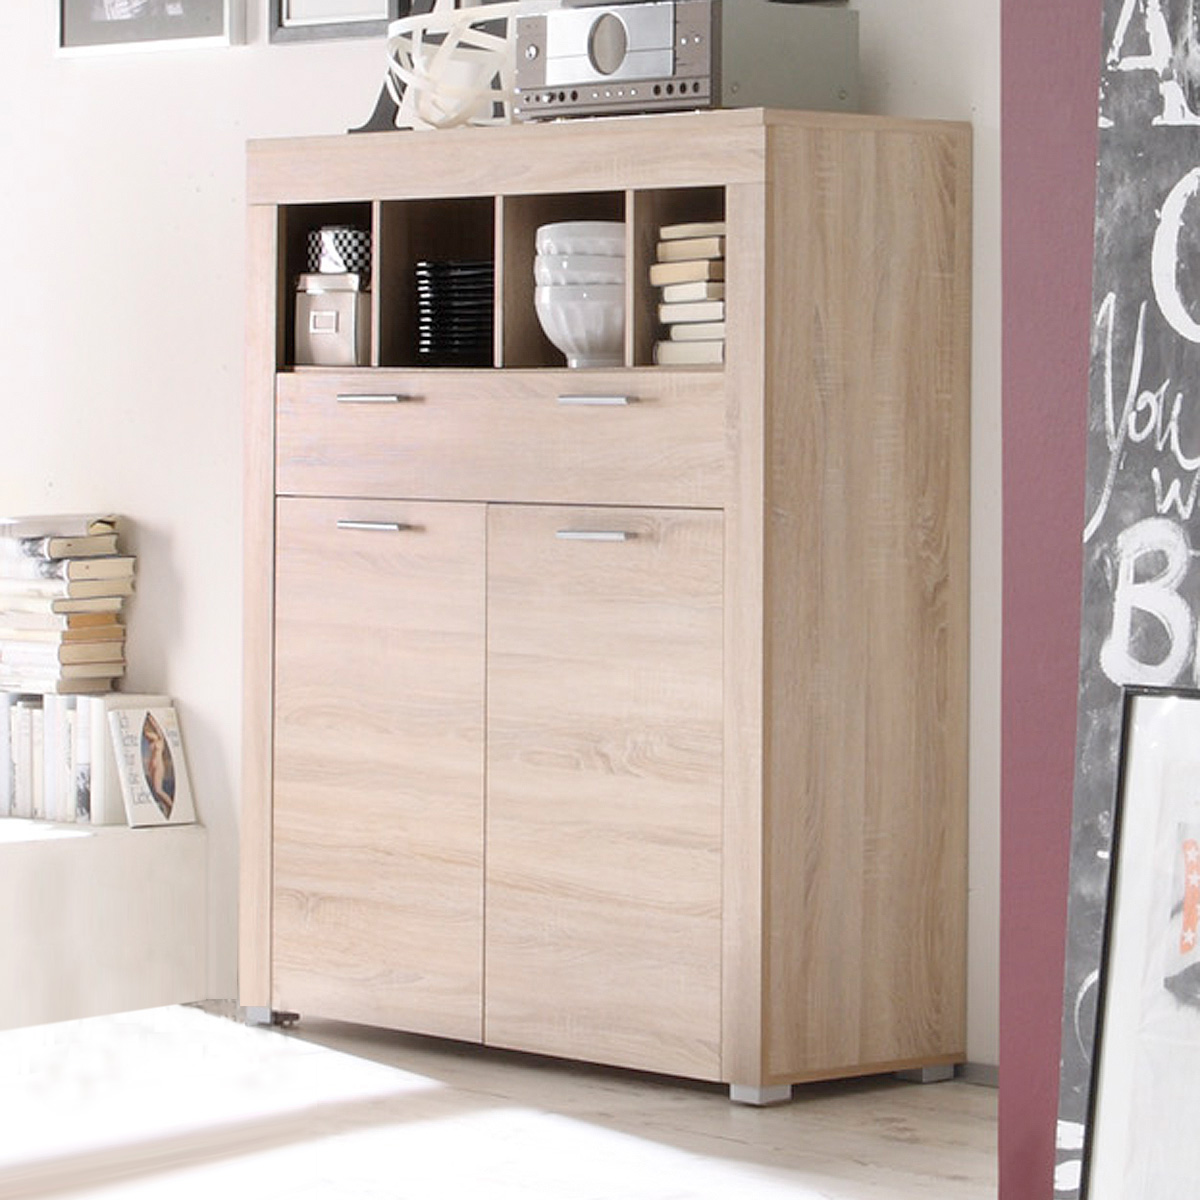 kommode boom schrank sideboard sonoma eiche s gerau hell ebay. Black Bedroom Furniture Sets. Home Design Ideas